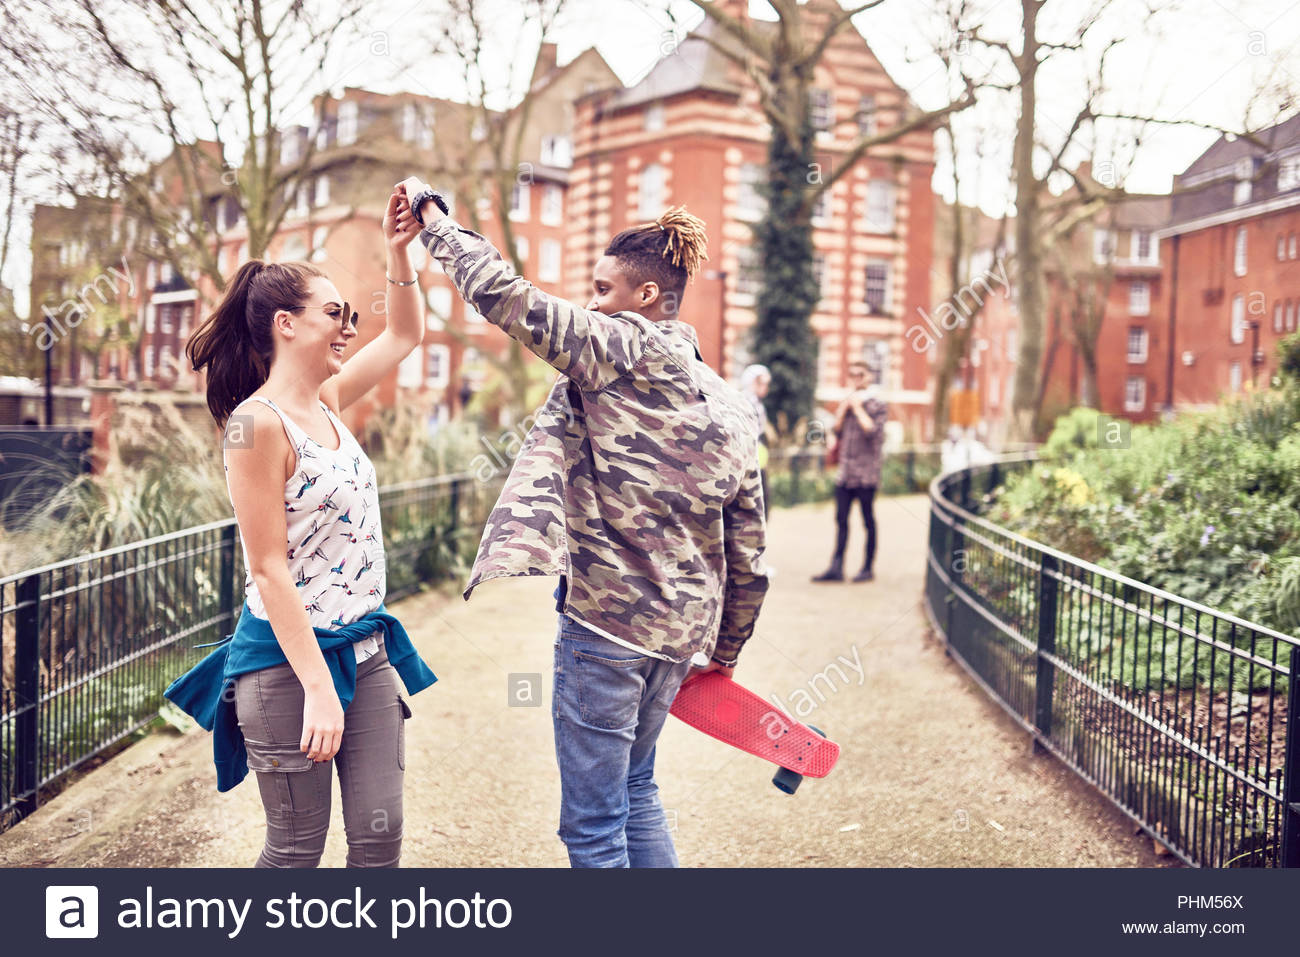 Teenage couple dancing in park - Stock Image